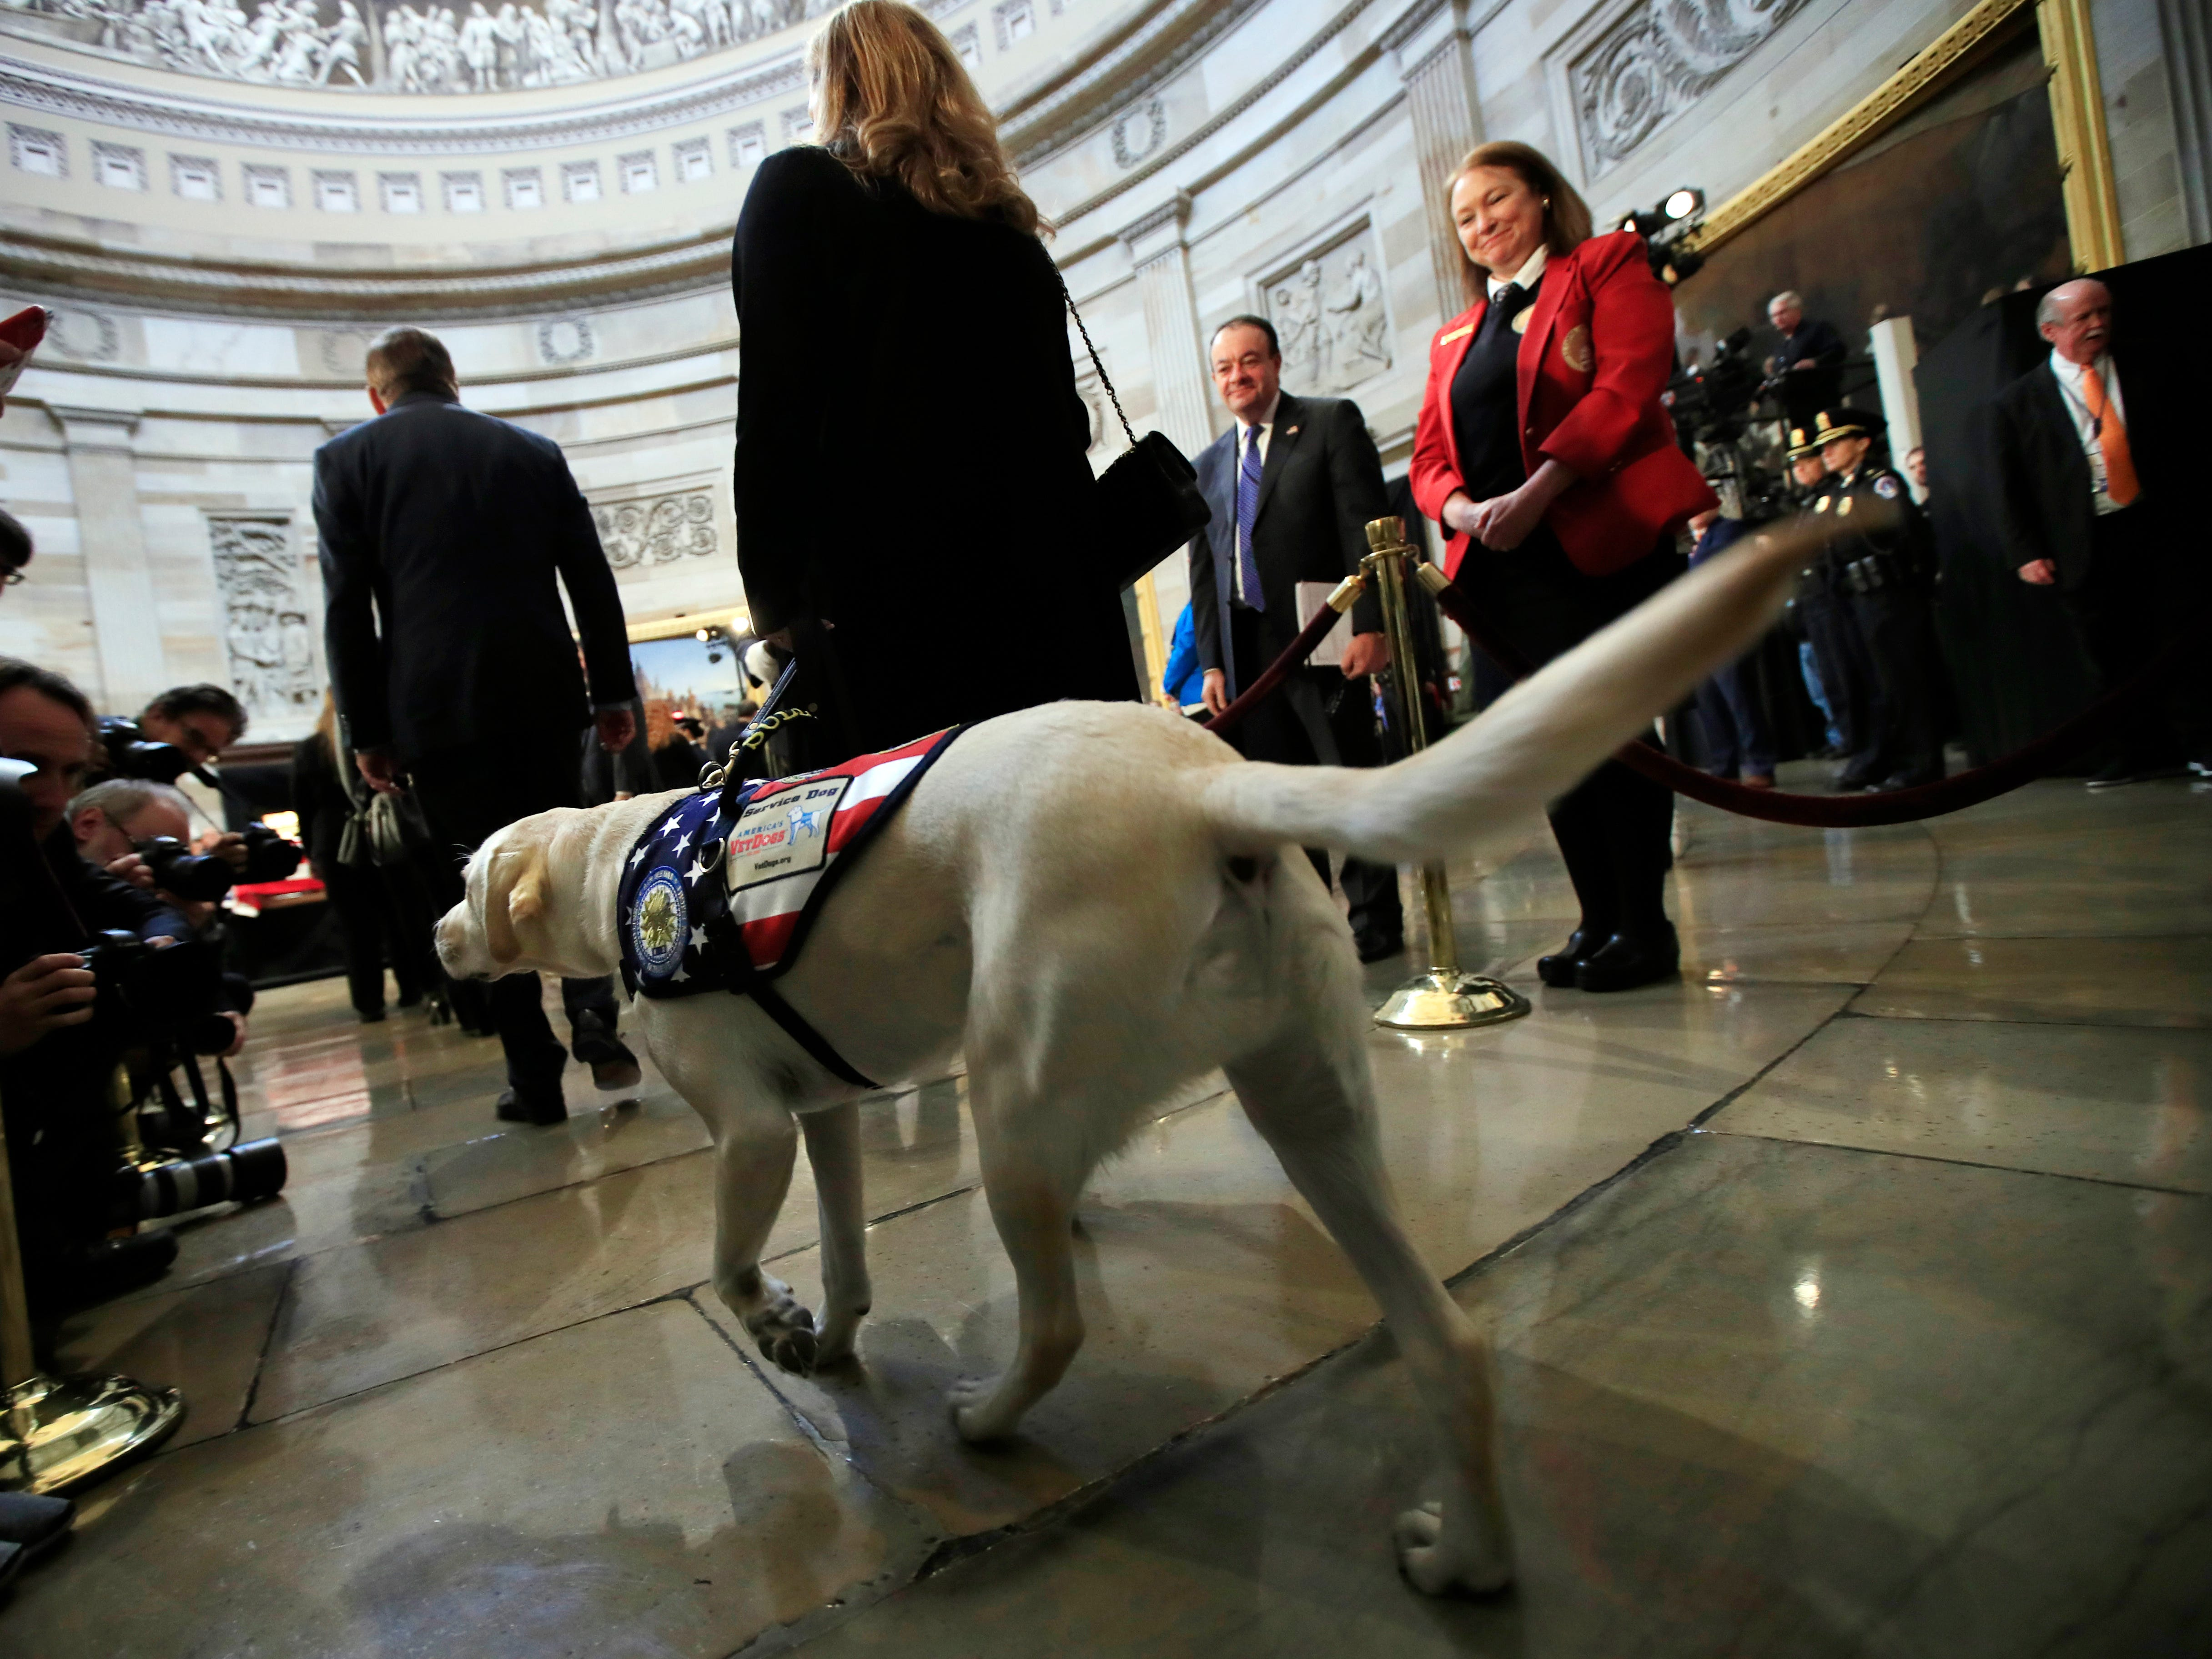 Sully, former President George H.W. Bush's service dog, walks to the Capitol Rotunda to pay respect to President Bush as he lie in state at the U.S. Capitol in Washington, Tuesday, Dec. 4, 2018. (AP Photo/Manuel Balce Ceneta) ORG XMIT: DCMC109